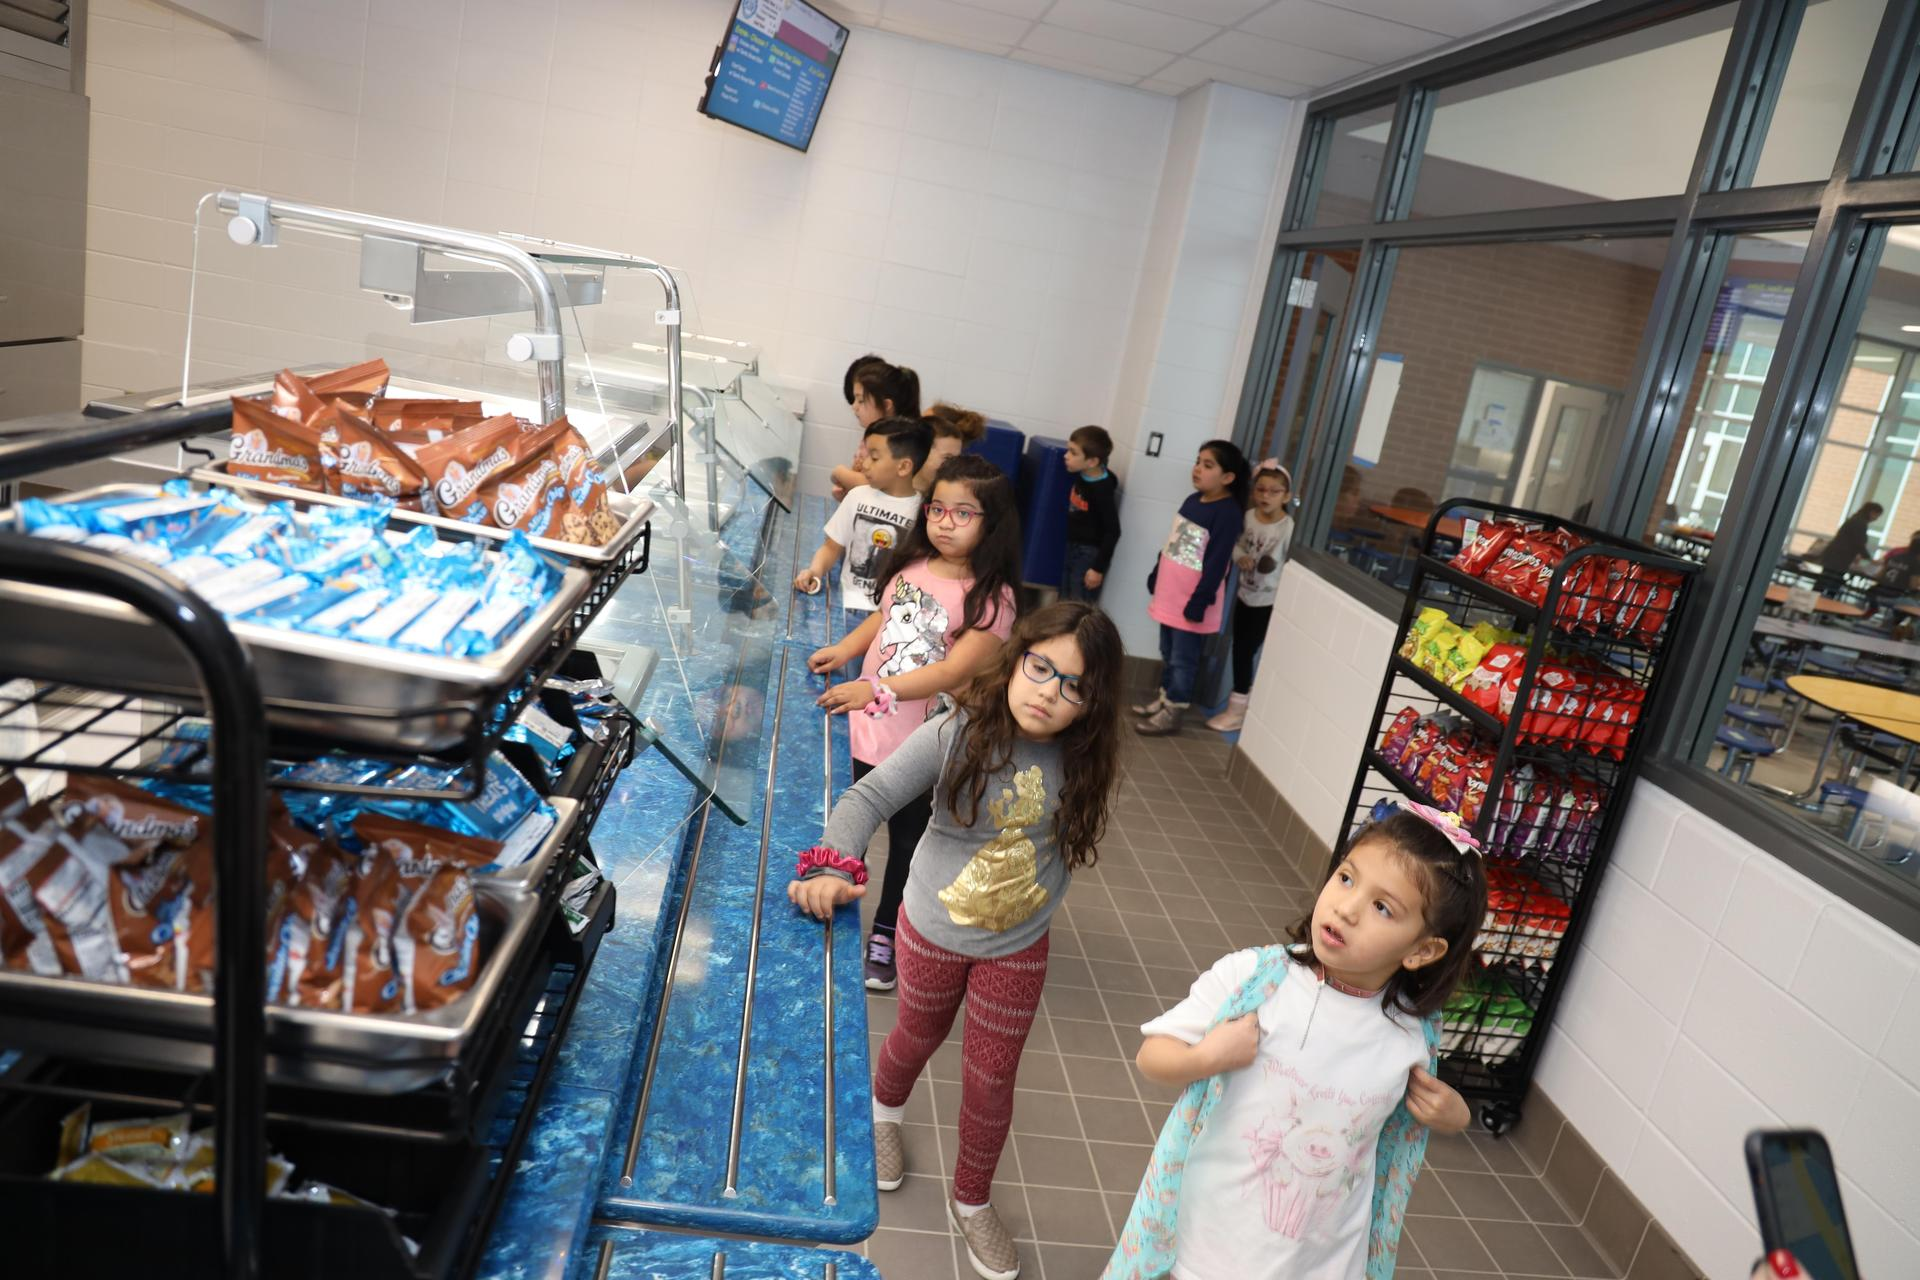 Carpenter Elementary students celebrate the opening of their new school